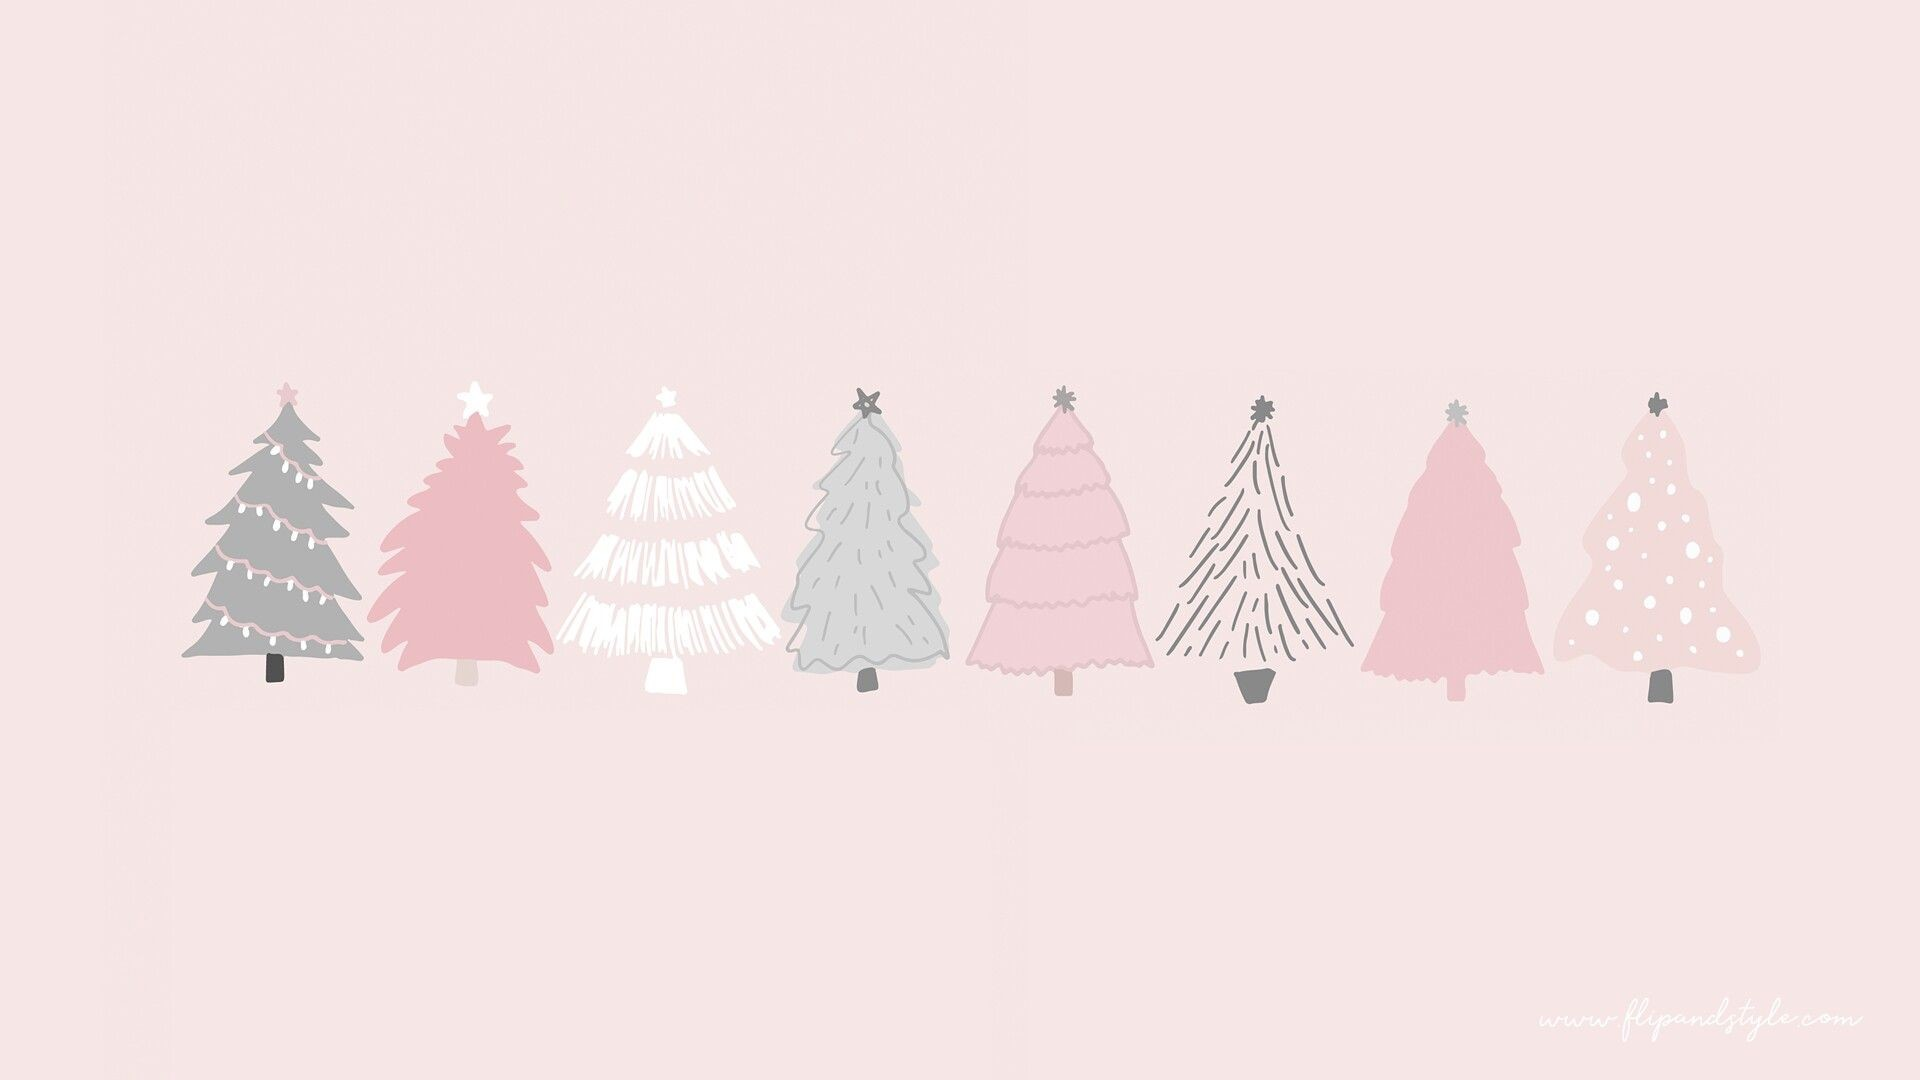 56+] Christmas Desktop Cute Wallpapers